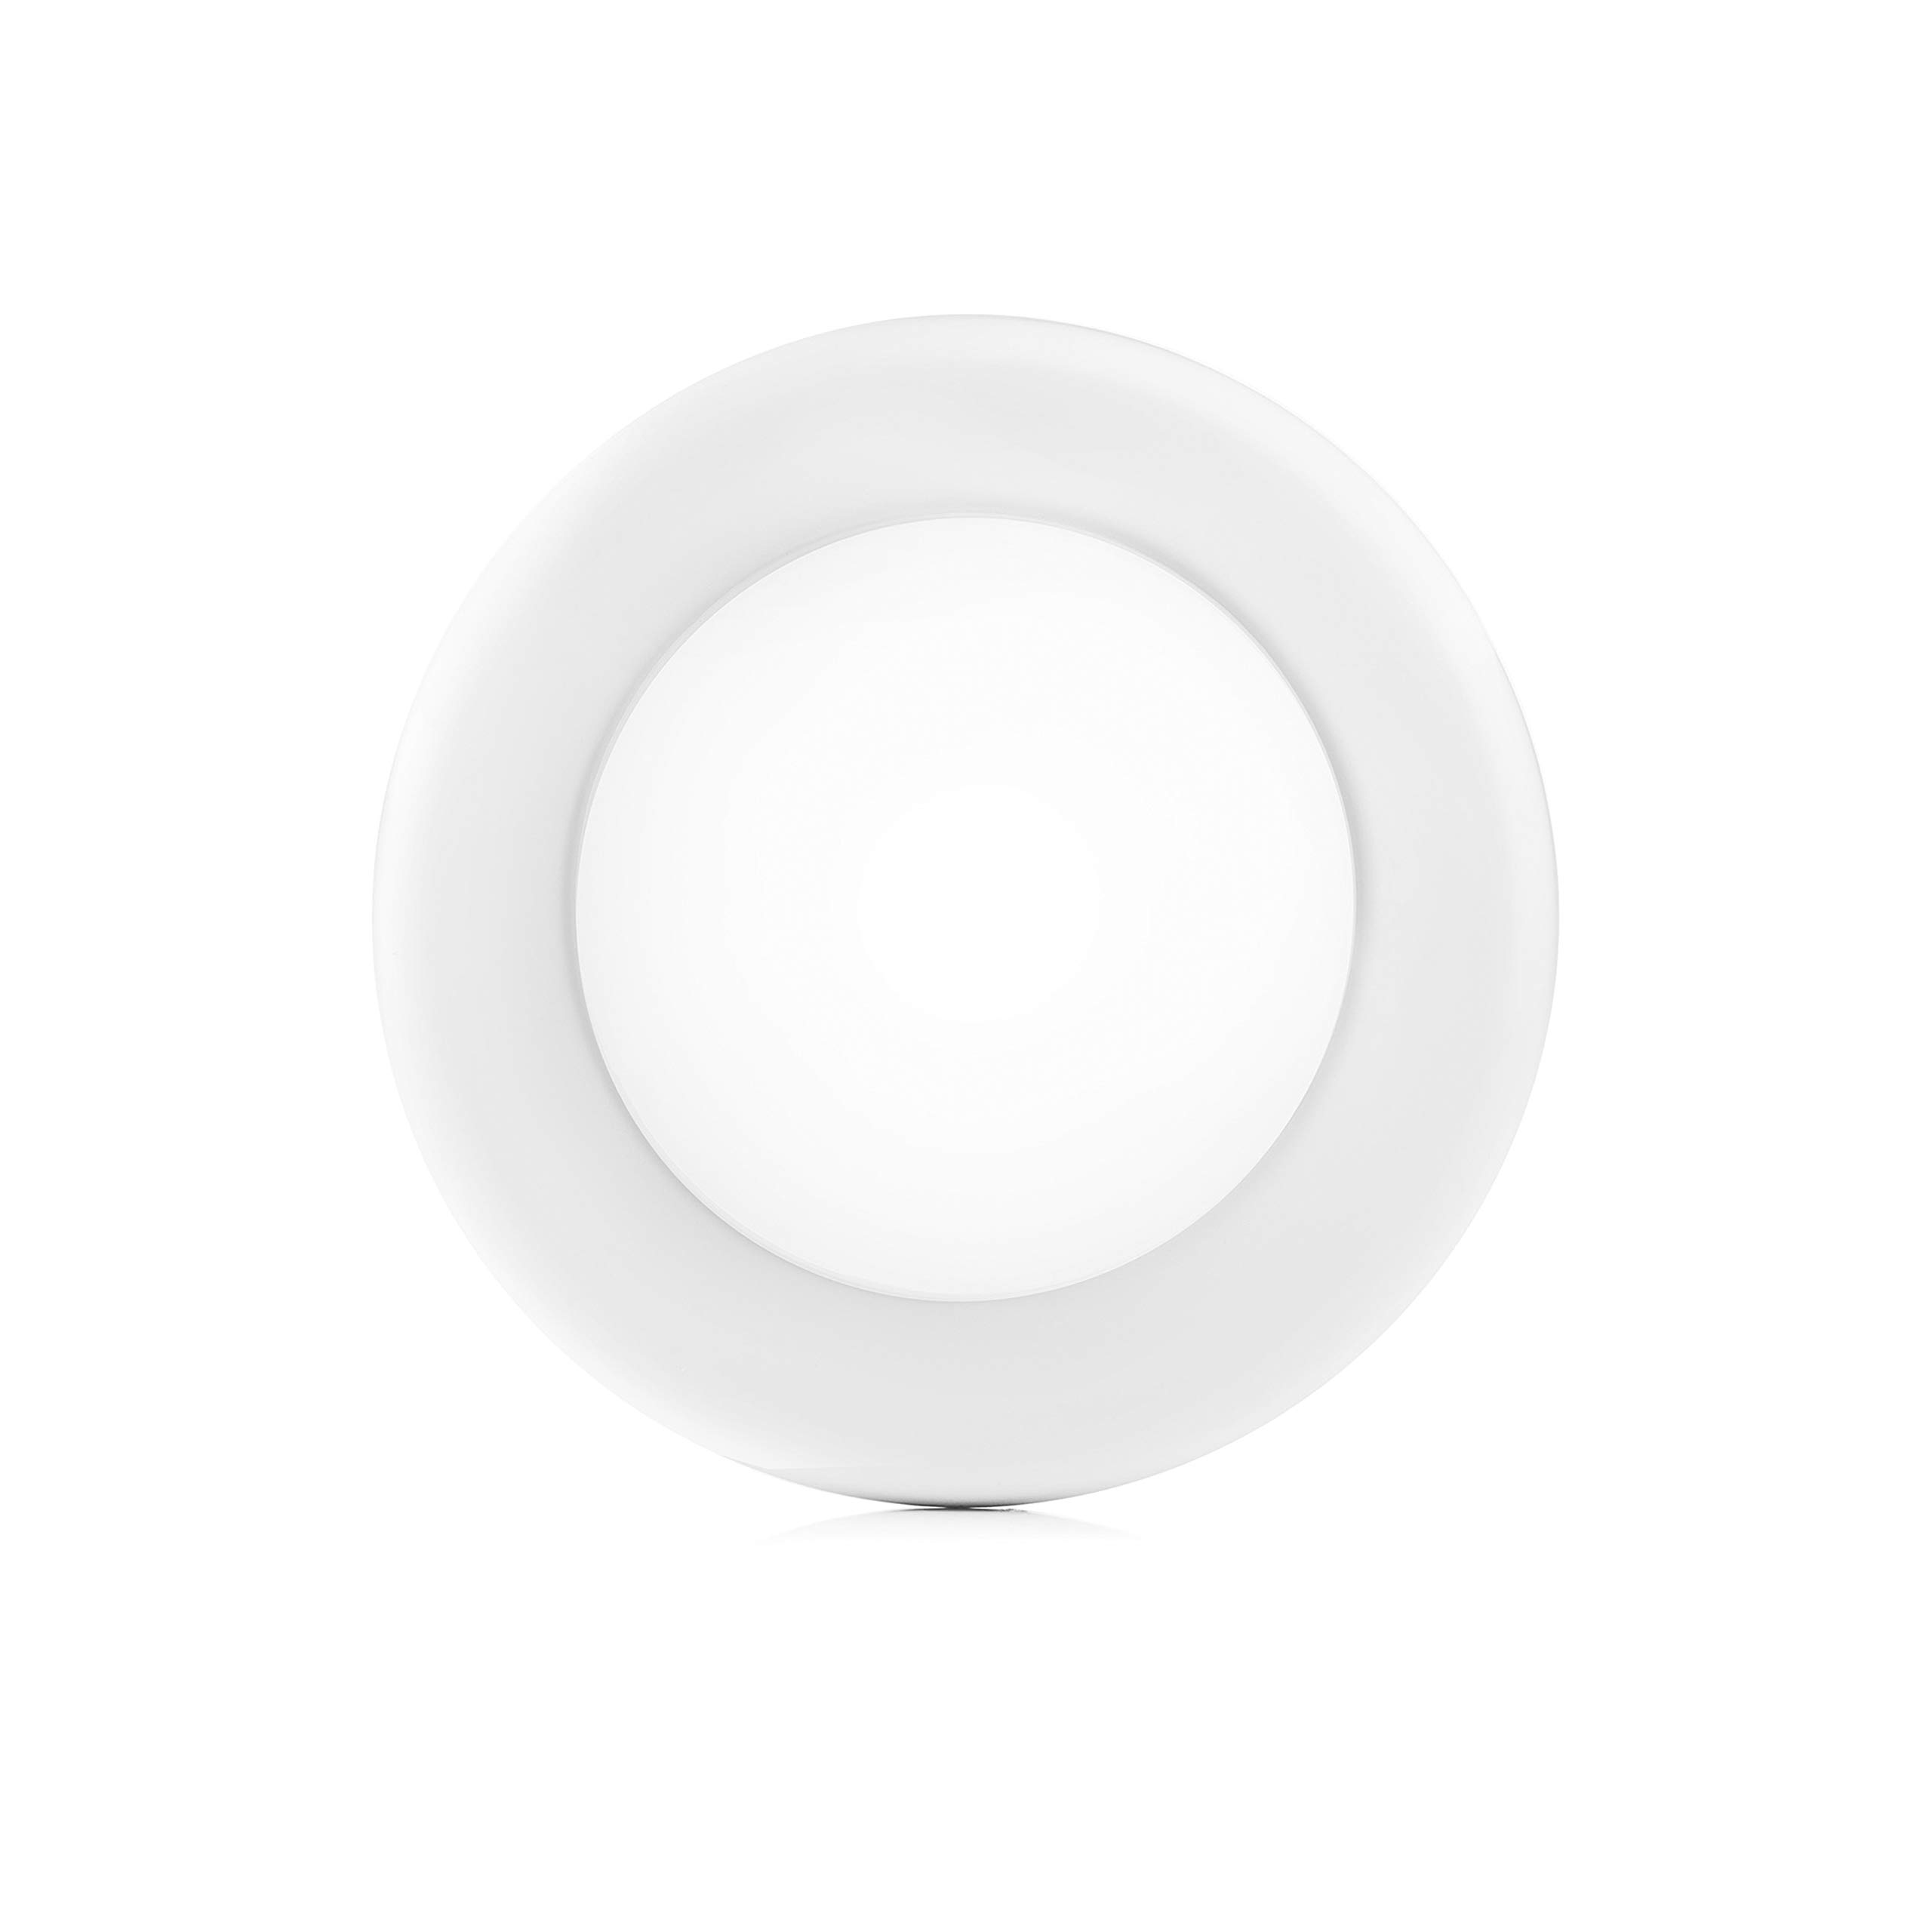 PARMIDA (1 Pack) 4 inch Dimmable LED Disk Light Flush Mount Recessed Retrofit Ceiling Lights, 10W (60W Replacement), 650lm, Installs into Junction Box, ENERGY STAR & ETL-Listed, 4000K (Cool White)